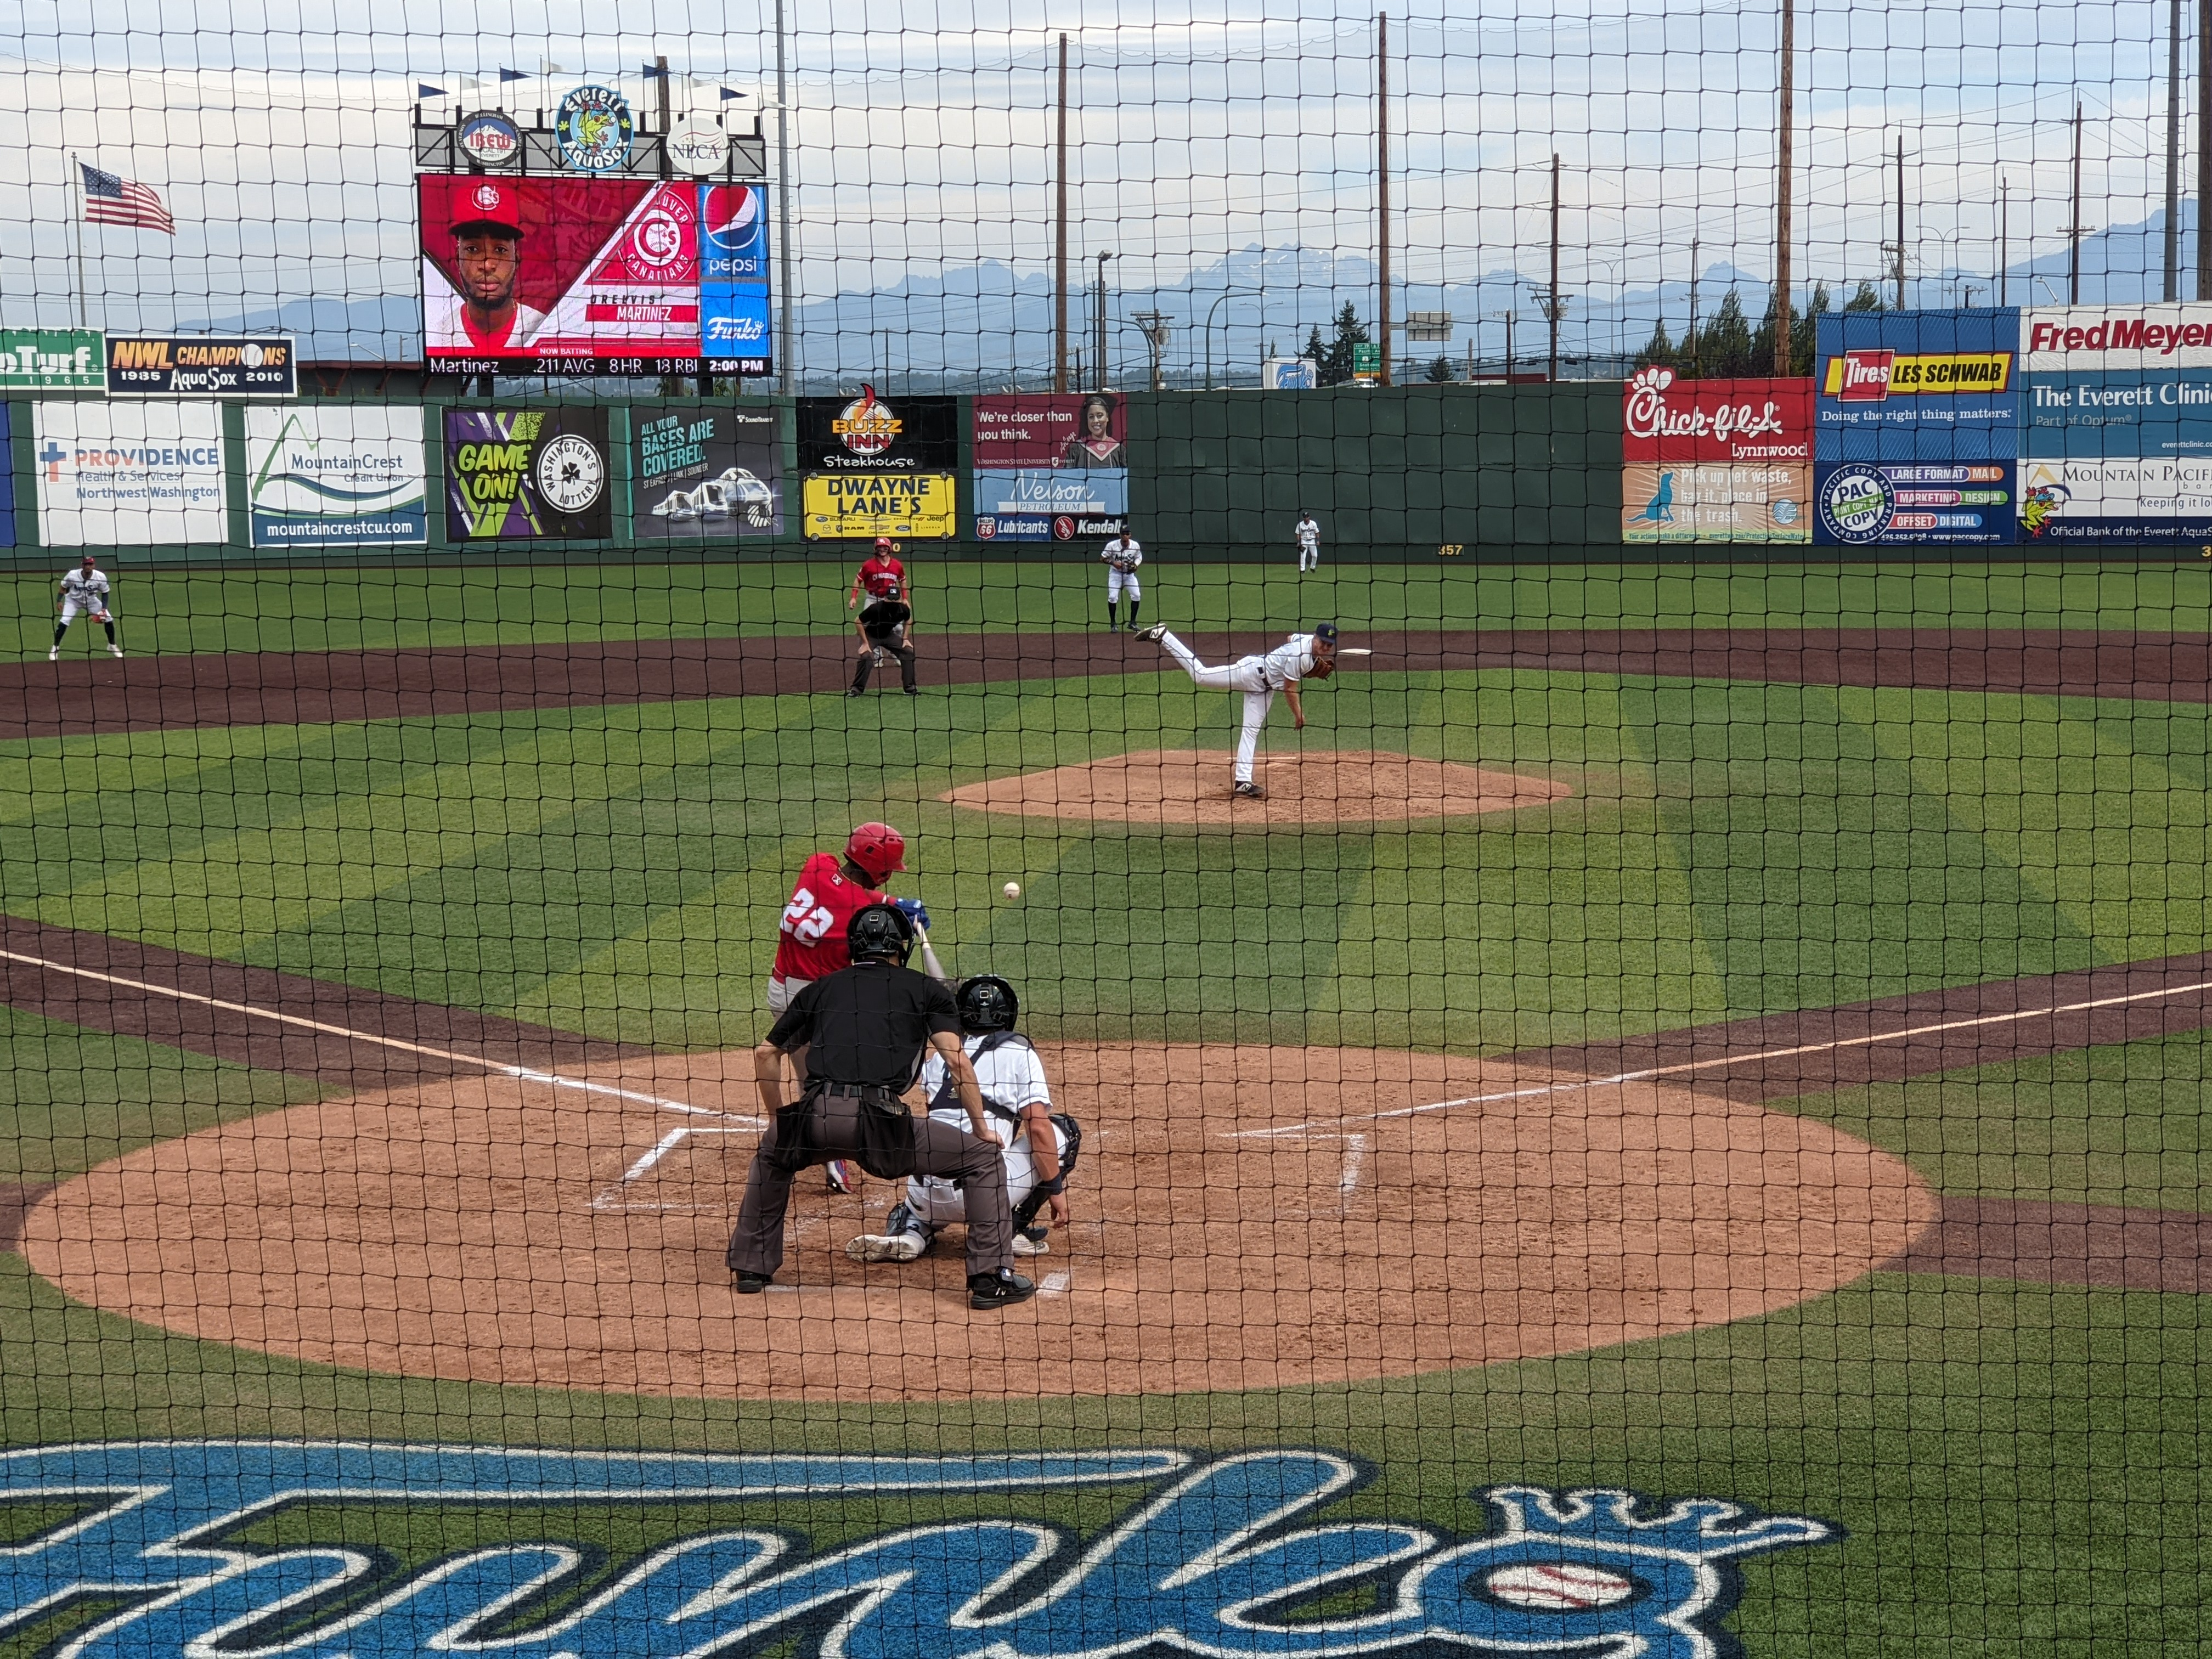 Orelvis Martinez (#22) of the Vancouver Canadians connects with a Tim Elliott pitch for a home run against the Everett AquaSox at Funko Field in Everett, WA.